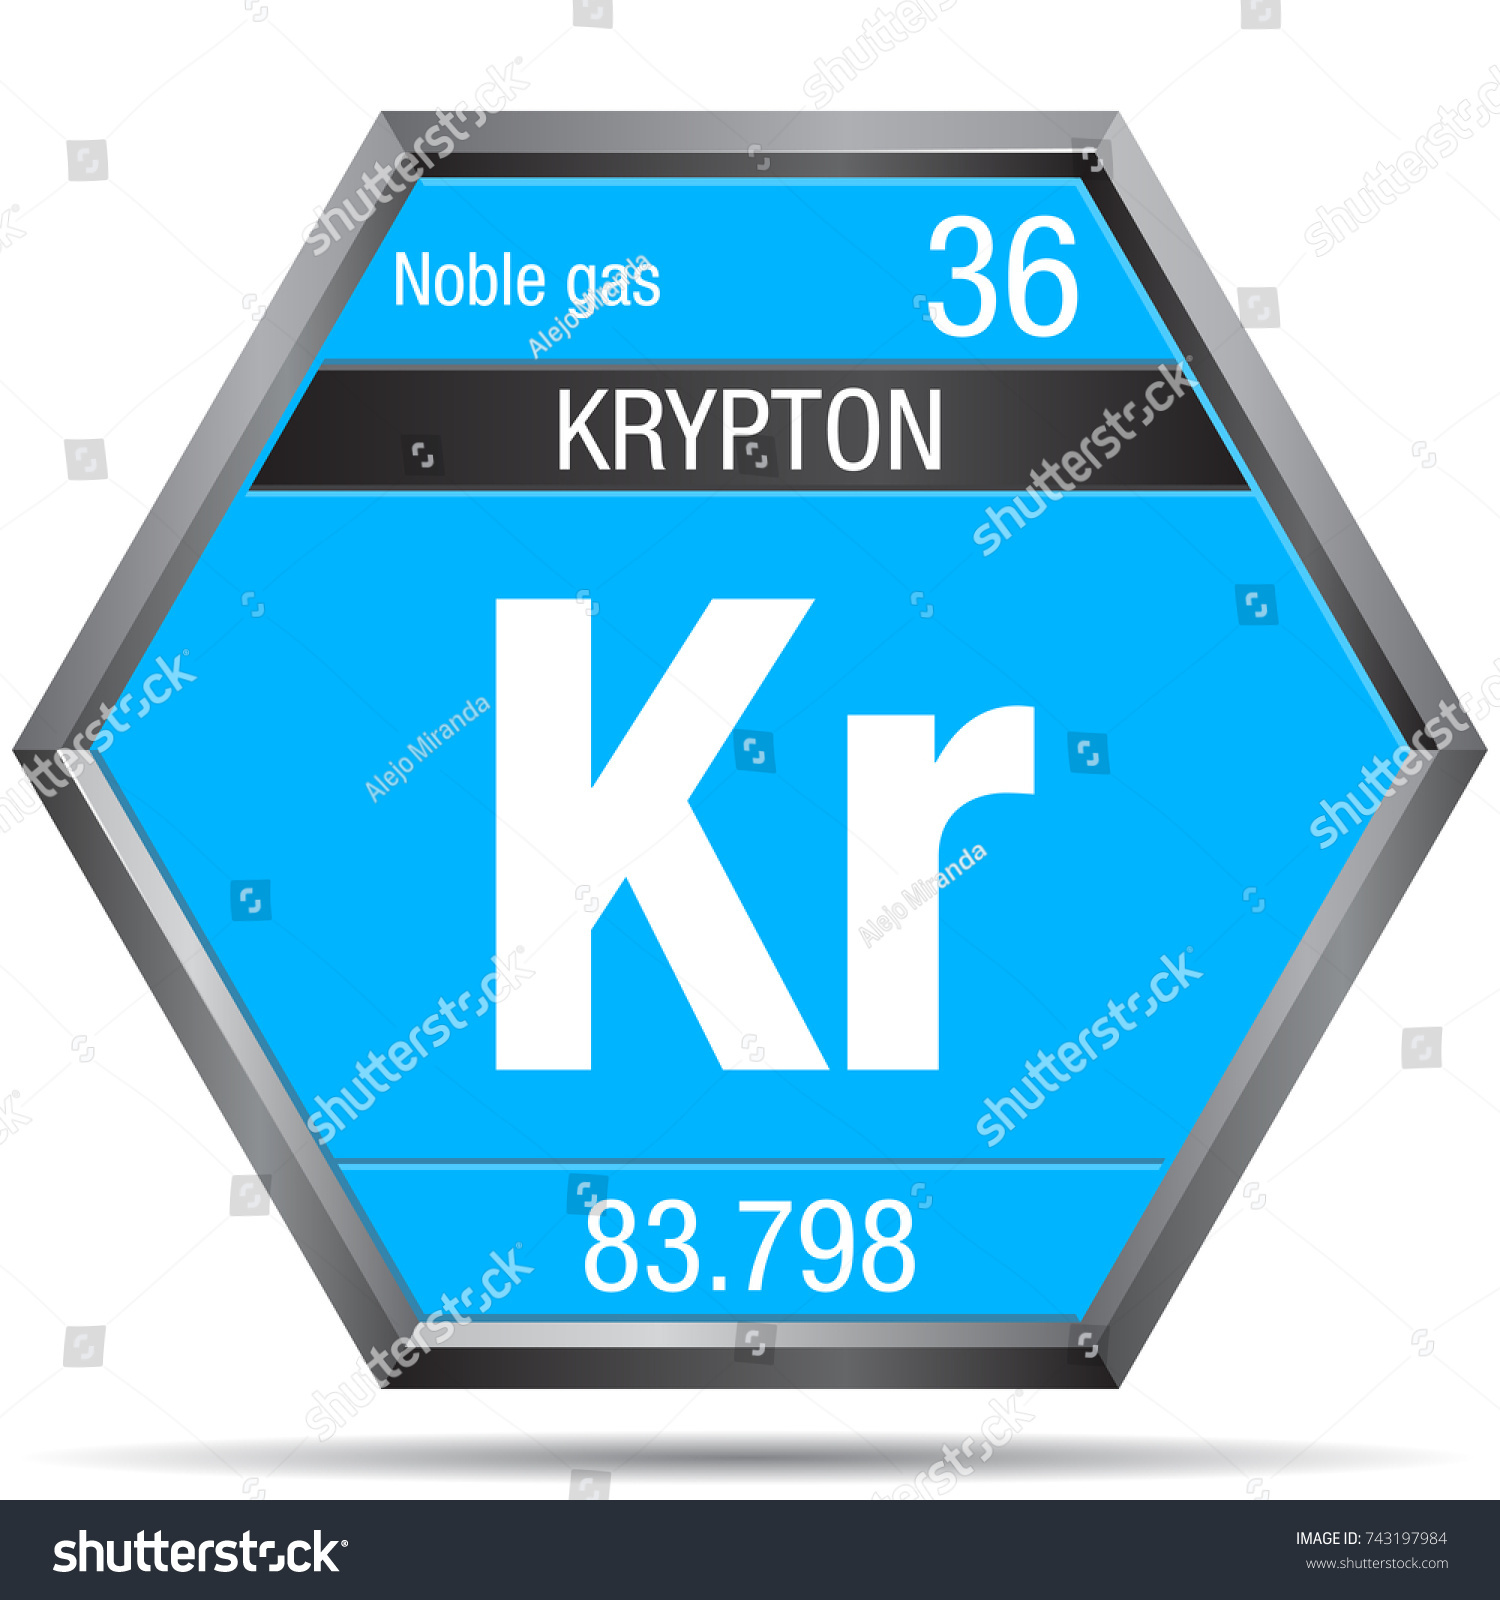 Krypton symbol form hexagon metallic frame stock vector 743197984 krypton symbol in the form of a hexagon with a metallic frame element number 36 buycottarizona